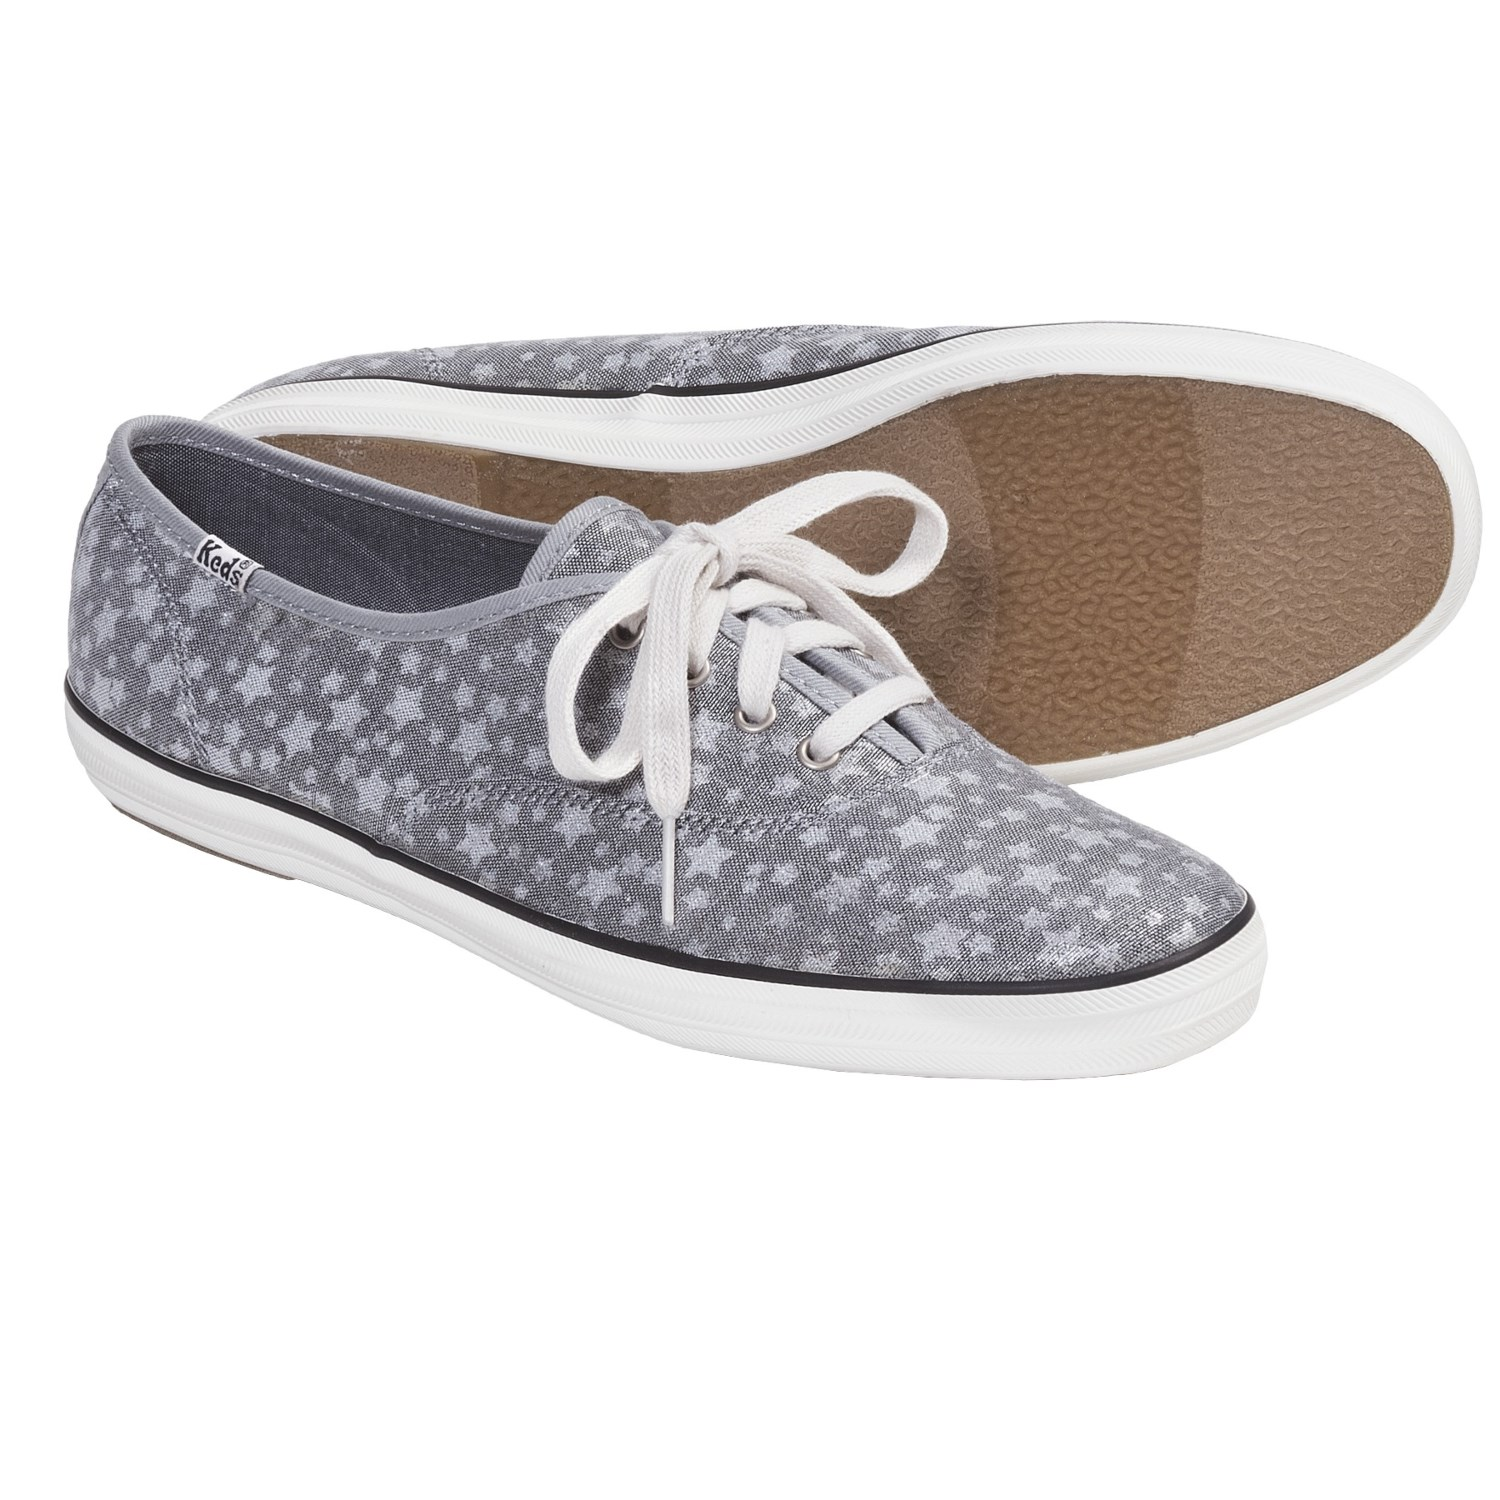 http://i.stpost.com/keds-champion-stars-sneakers-for-women-in-black~p